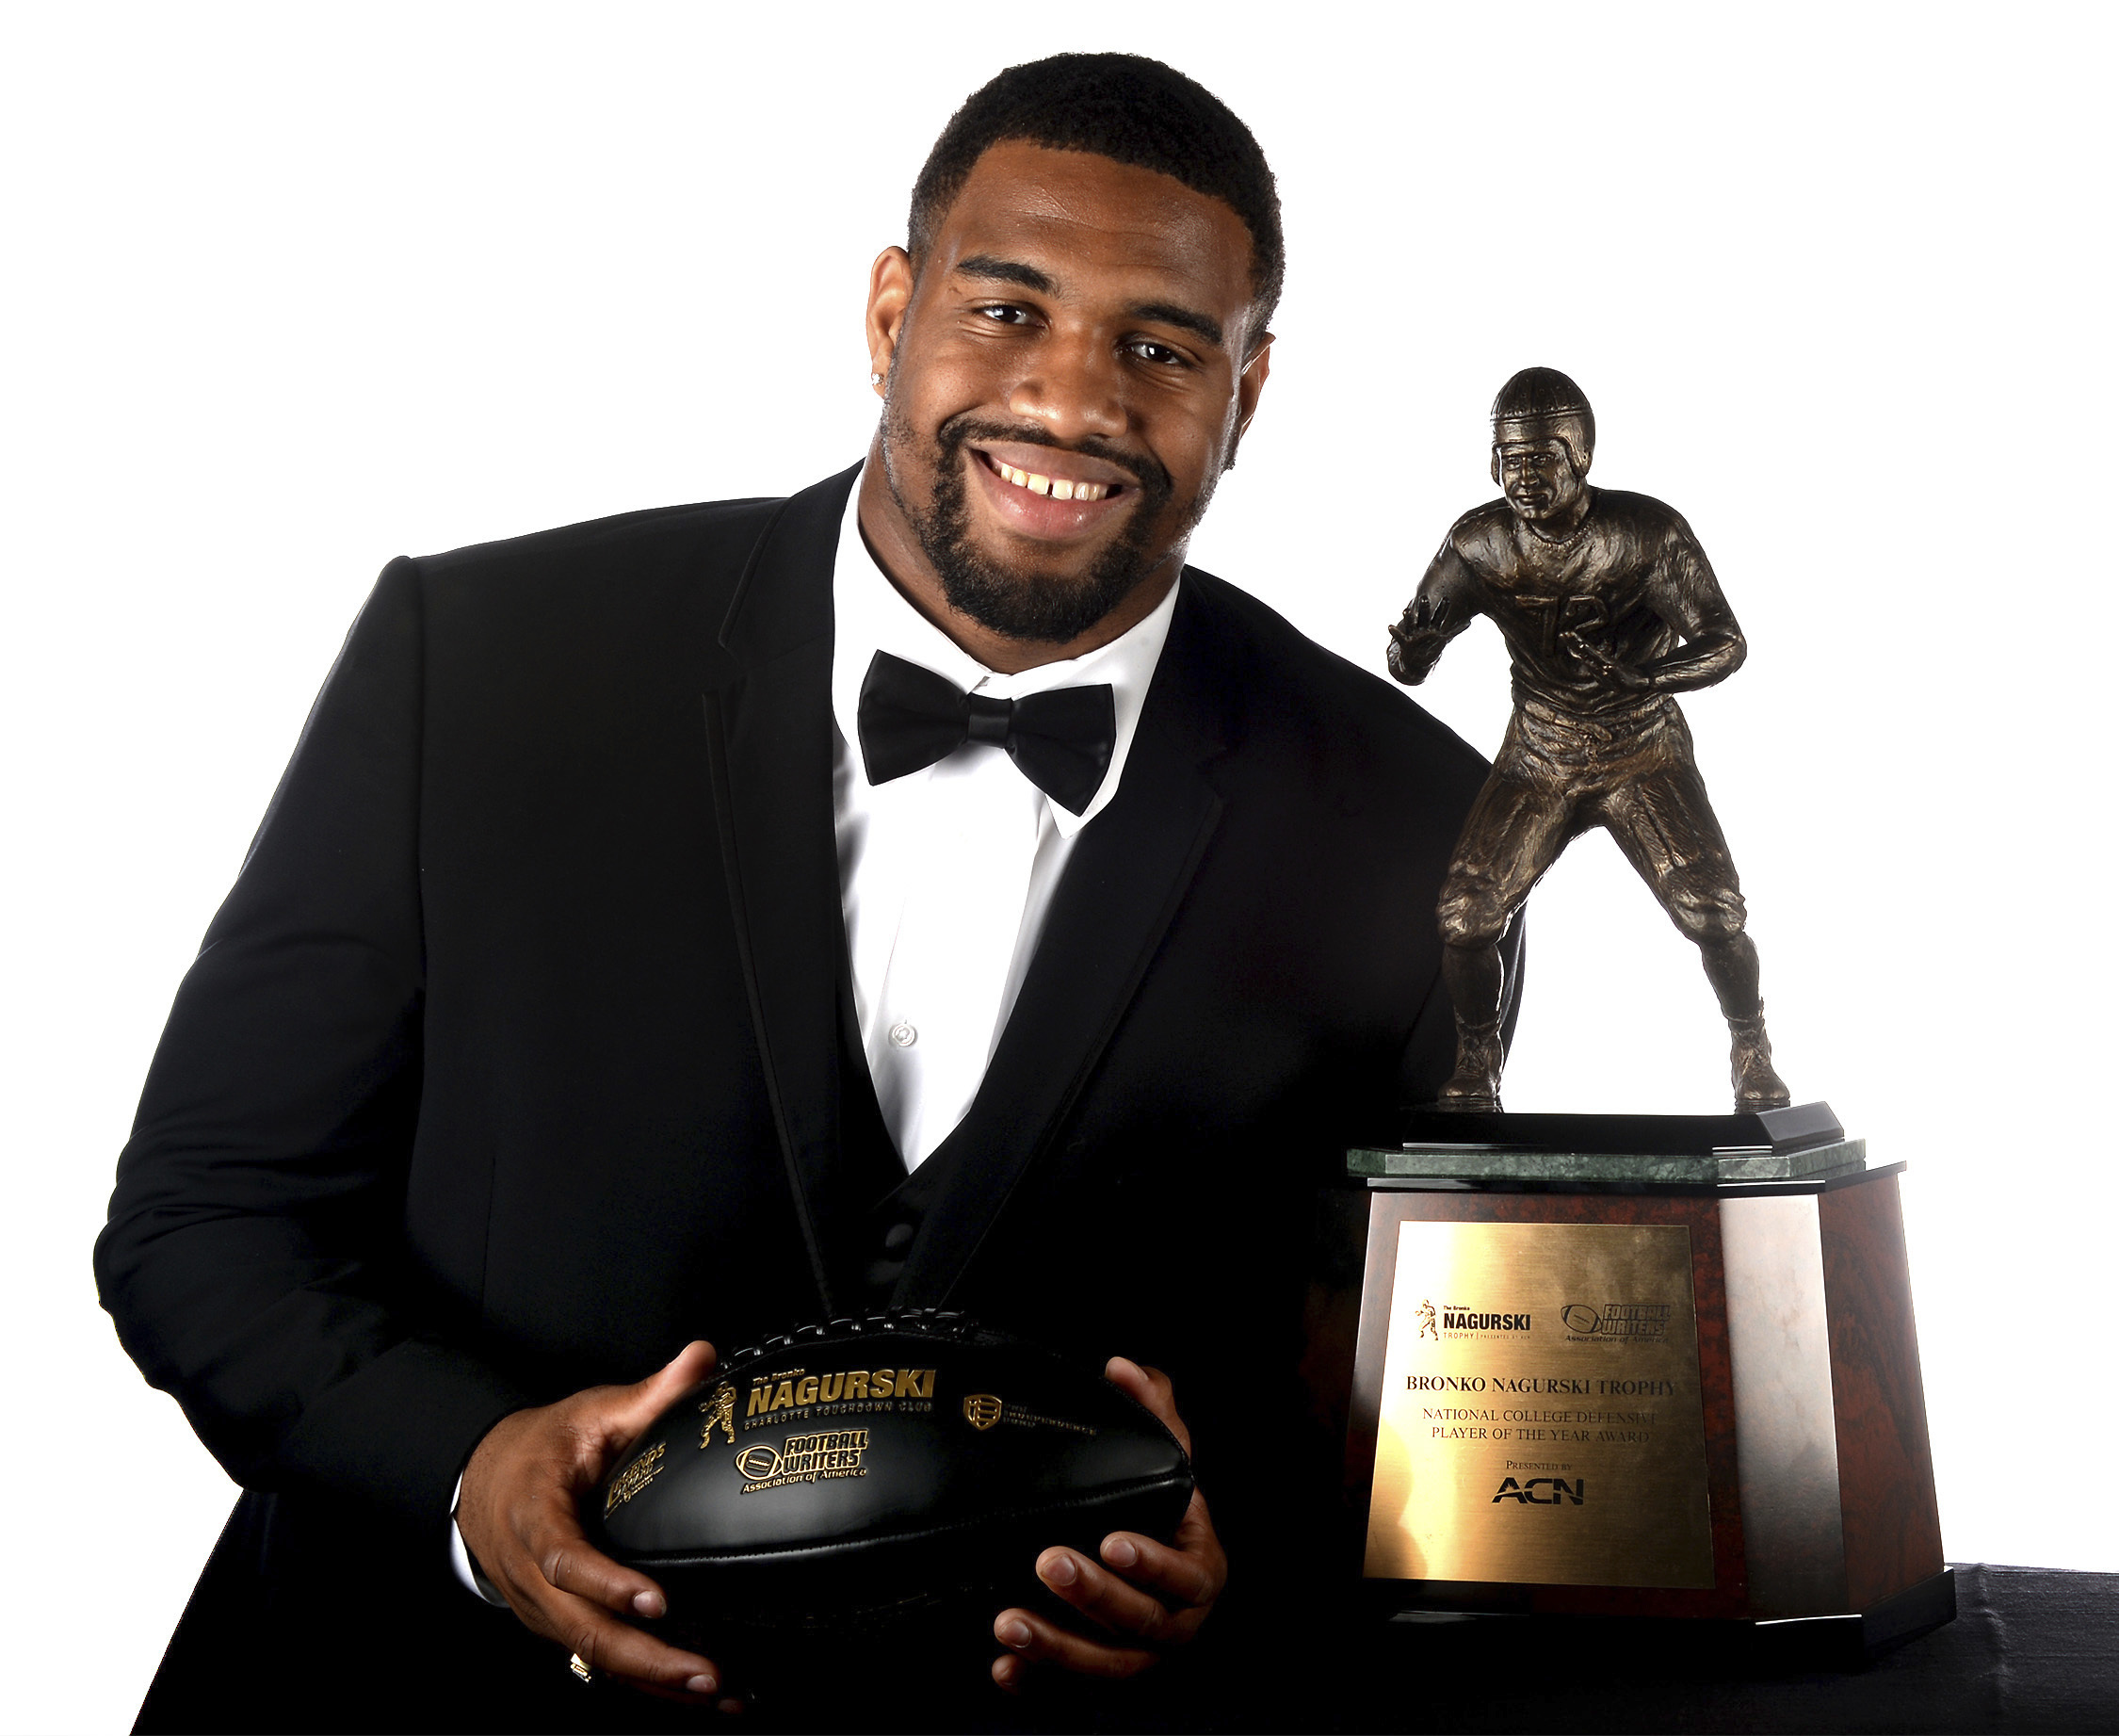 Alabama defensive end Jonathan Allen won the 2016 Bronko Nagurski Trophy, presented at the Charlotte Convention Center in Charlotte, NC on Monday, Dec. 5, 2016. The Bronko Nagurski Trophy is presented annually to the nation's top NCAA defensive football p